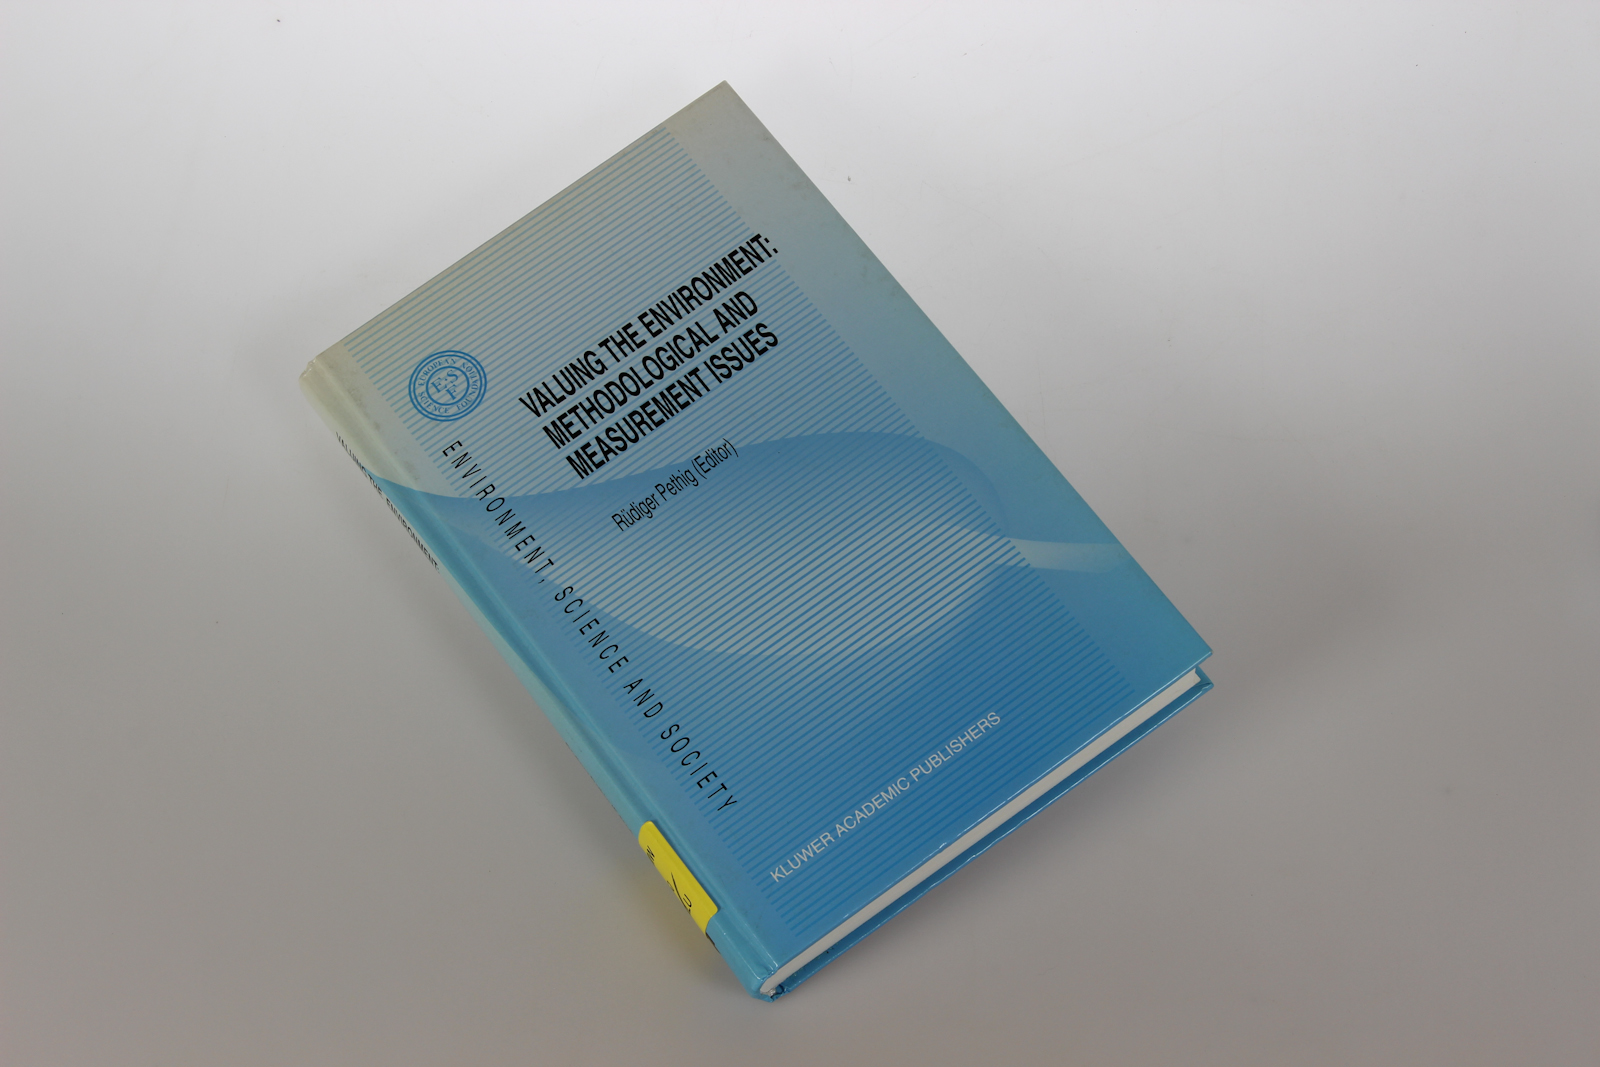 Pethig, Rüdiger: Valuing the Environment: Methodological and Measurement Issues (Environment, Science and Society) 1st ed.